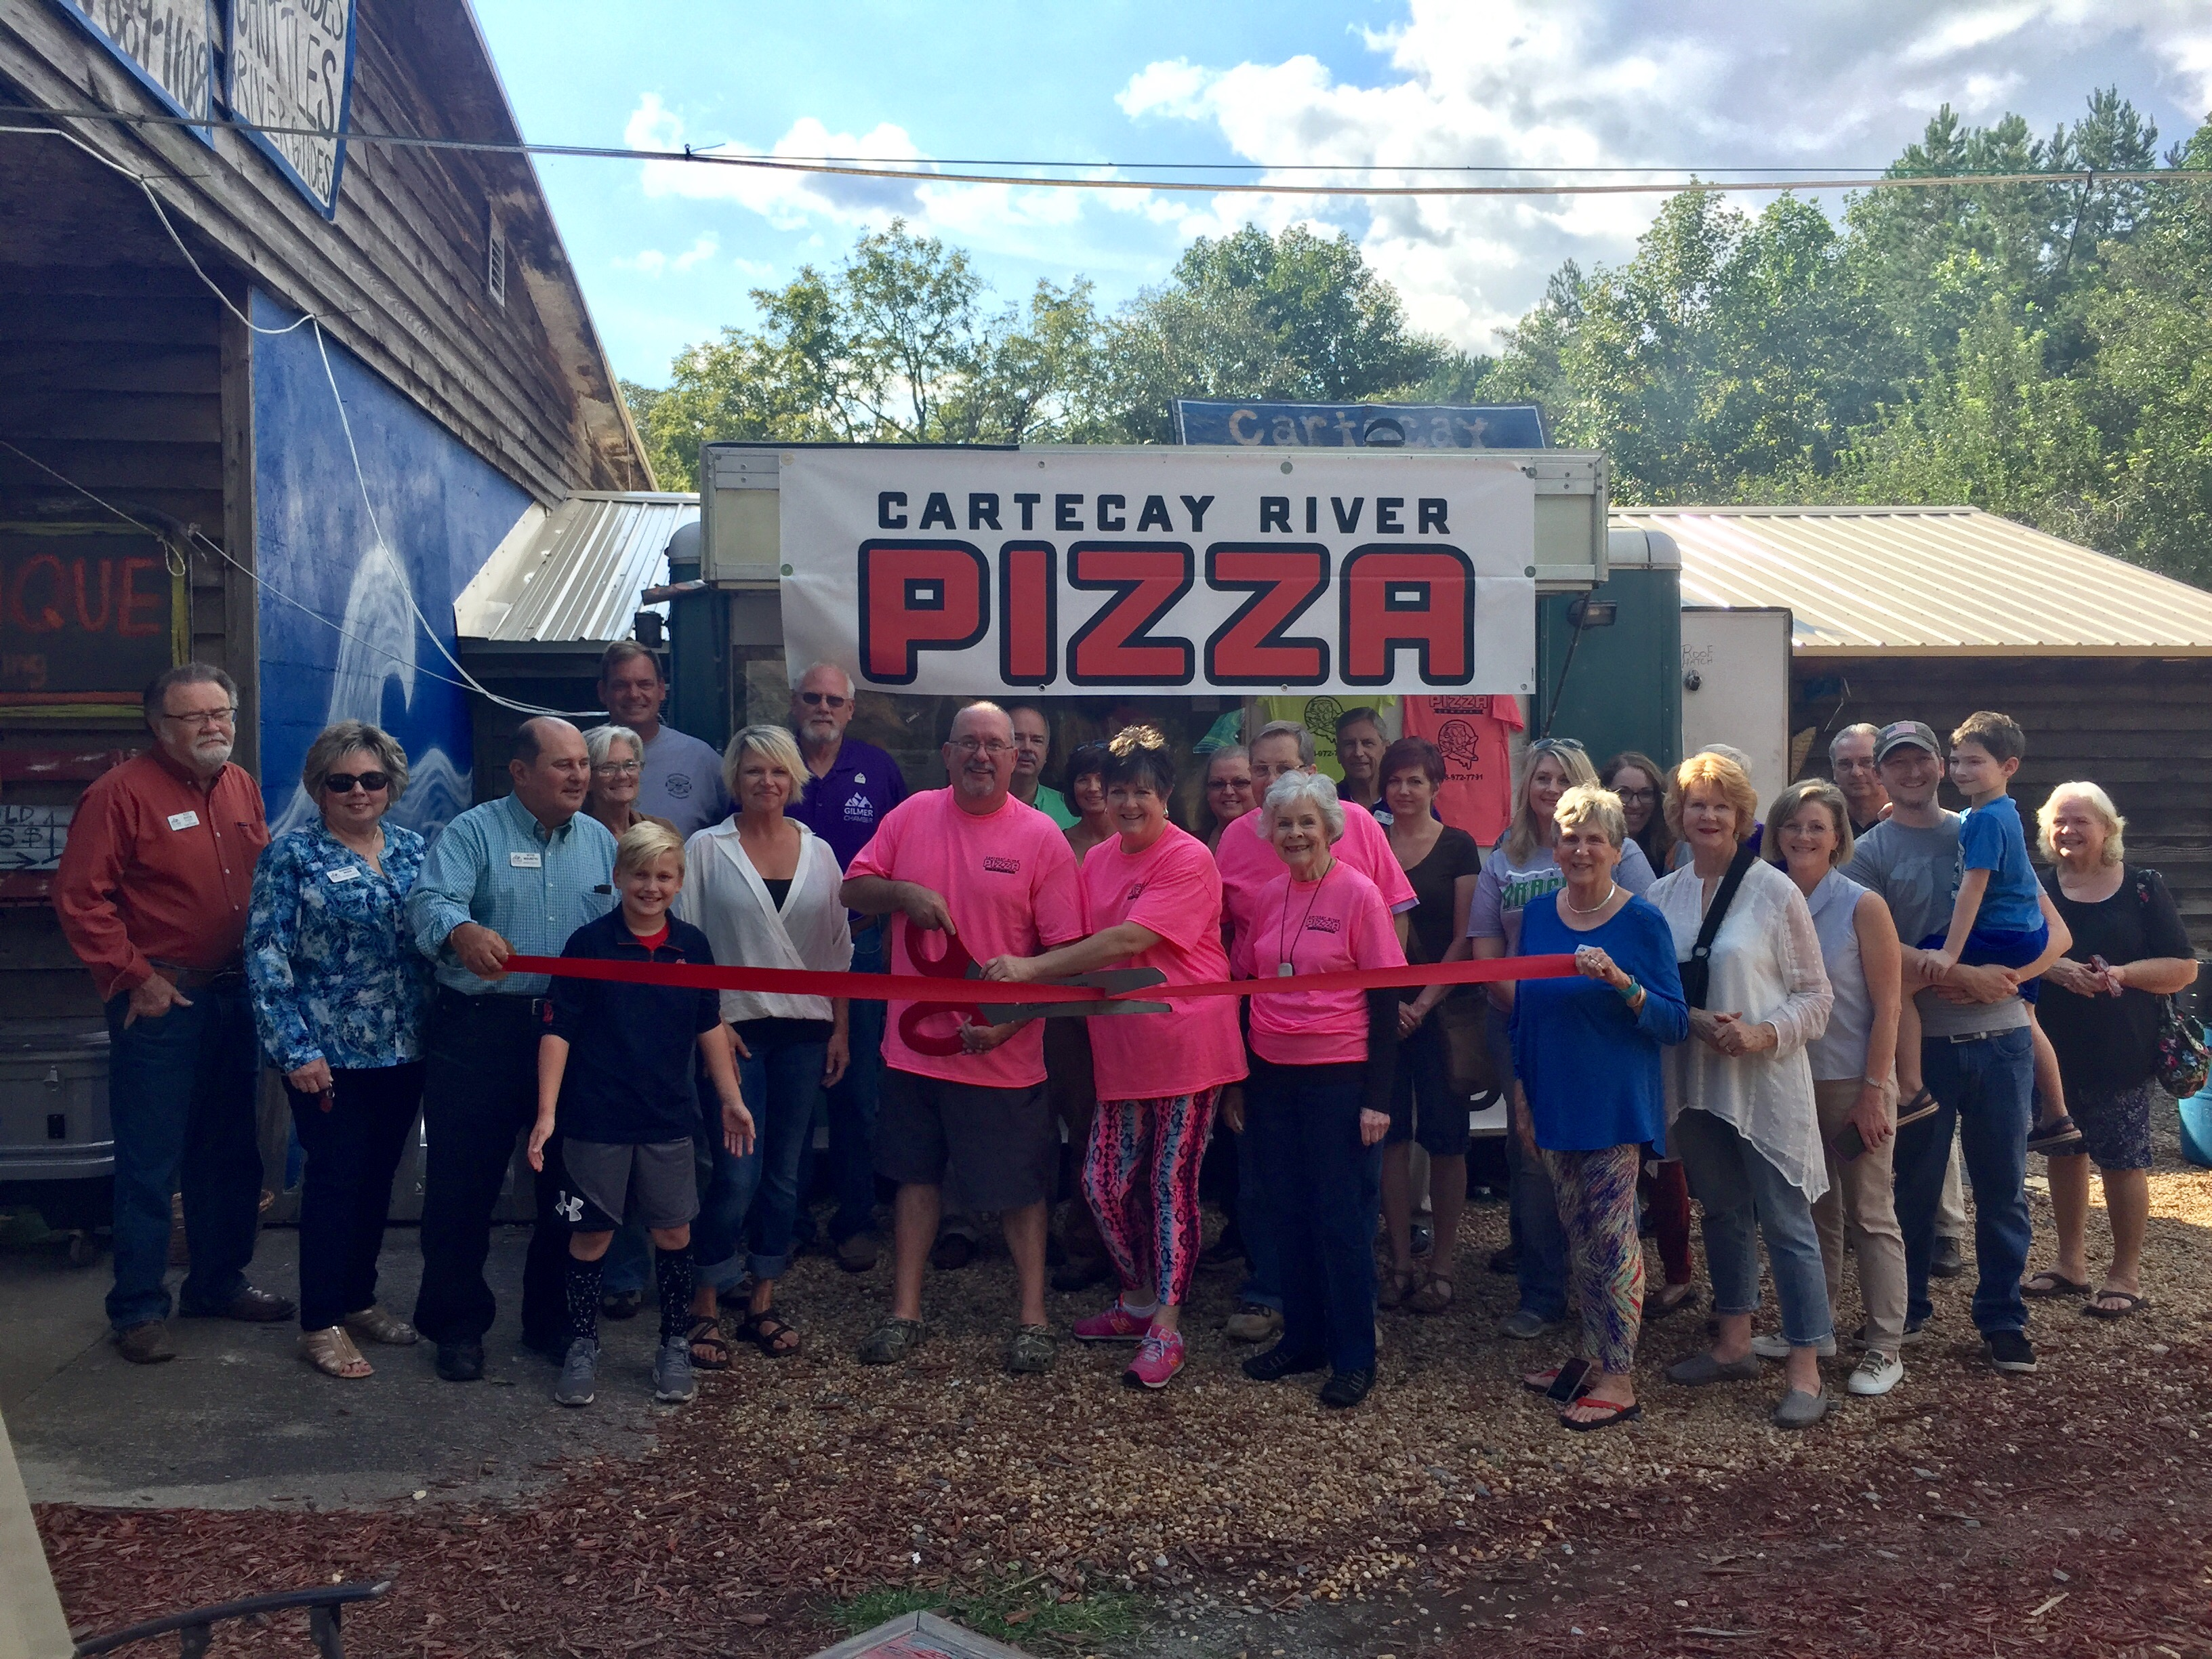 Photo-Sep-15-4-42-34-PM-1 Ribbon Cutting for Cartecay River Pizza Company - Gilmer County Chamber of Commerce